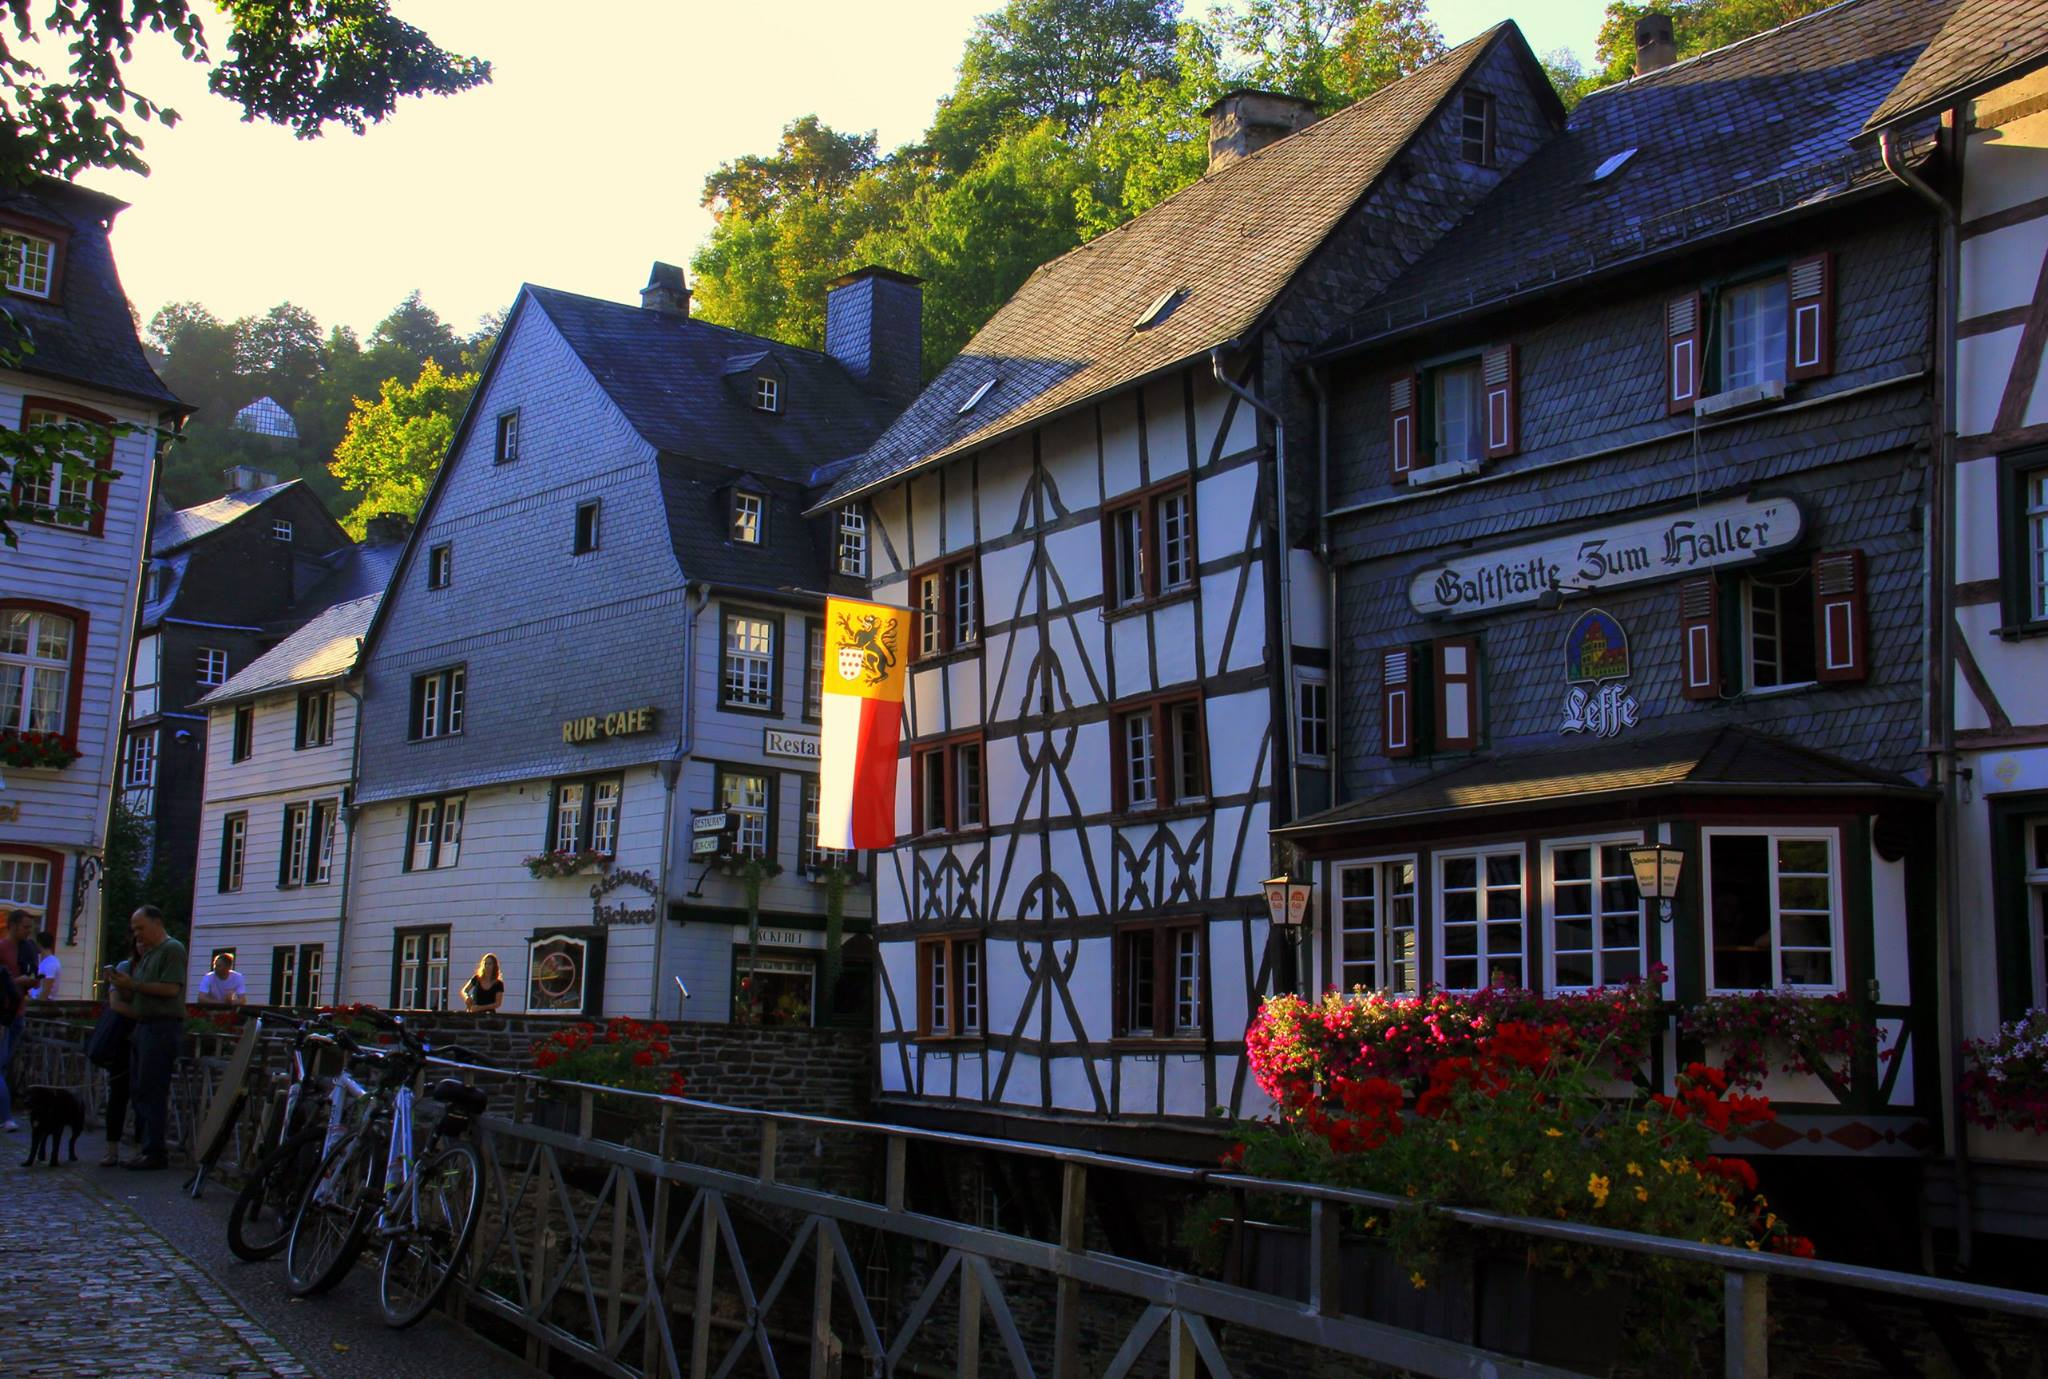 #Germany #Monschau #Germanyblog #Travelbloggerindia #Germanytourism